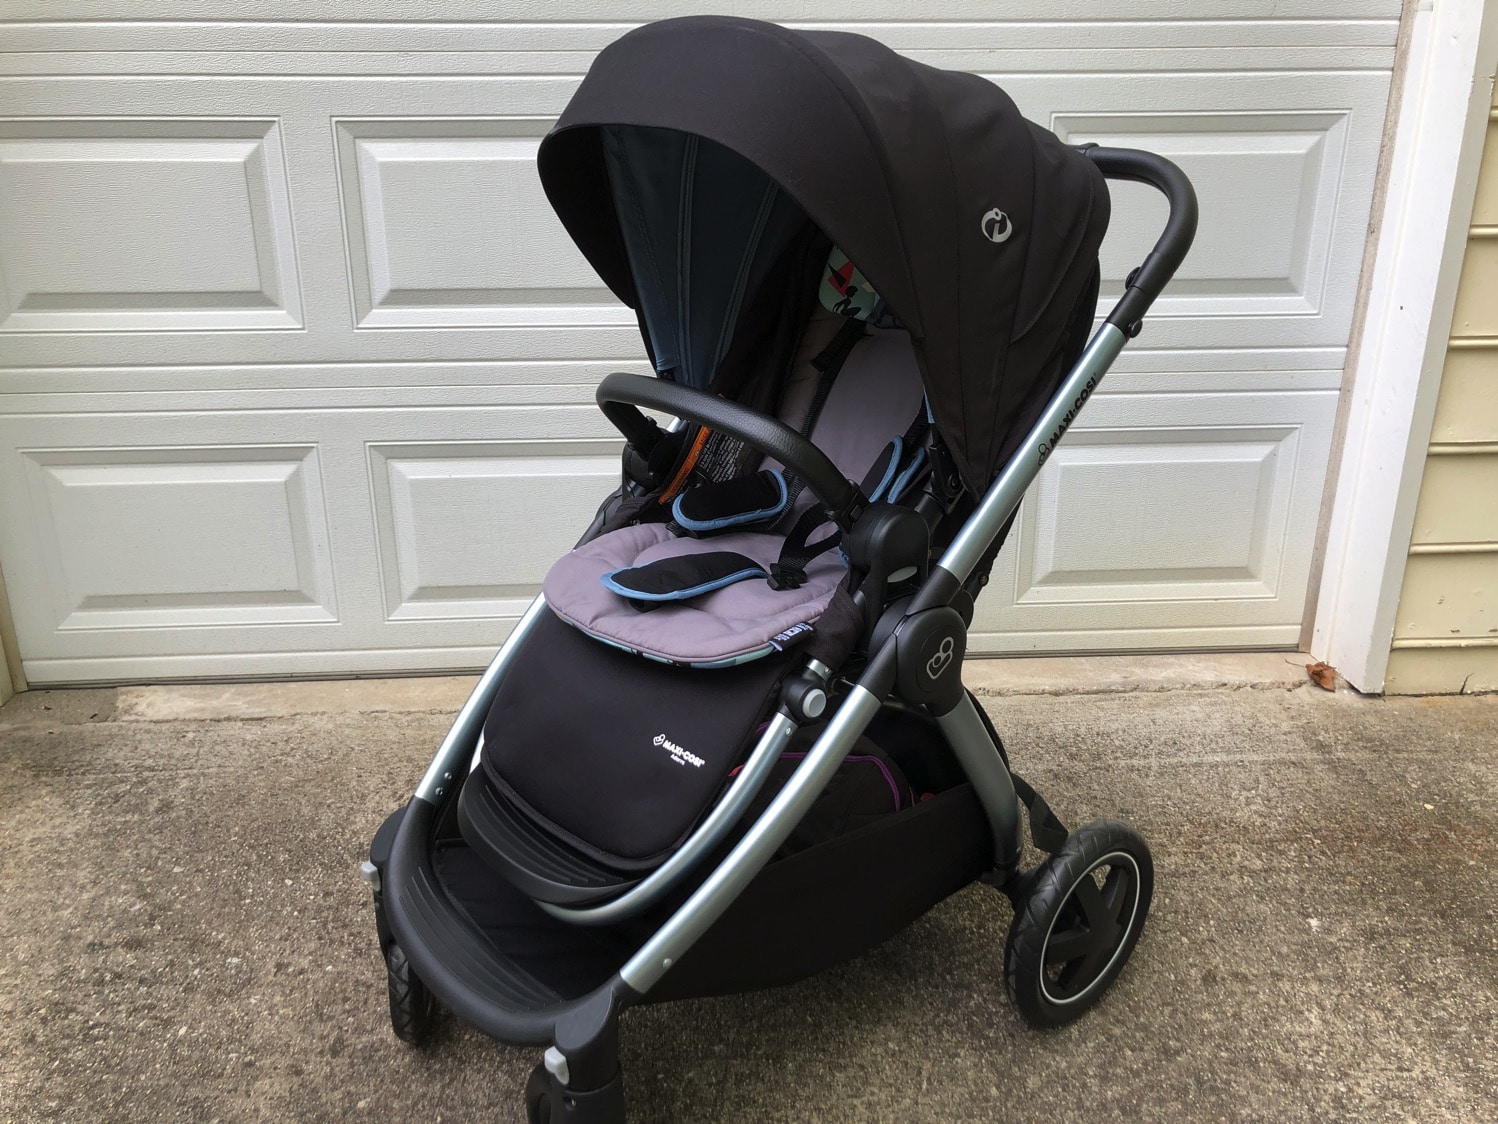 Incredibles 2: Limited-Edition Disney Adorra Travel System Review